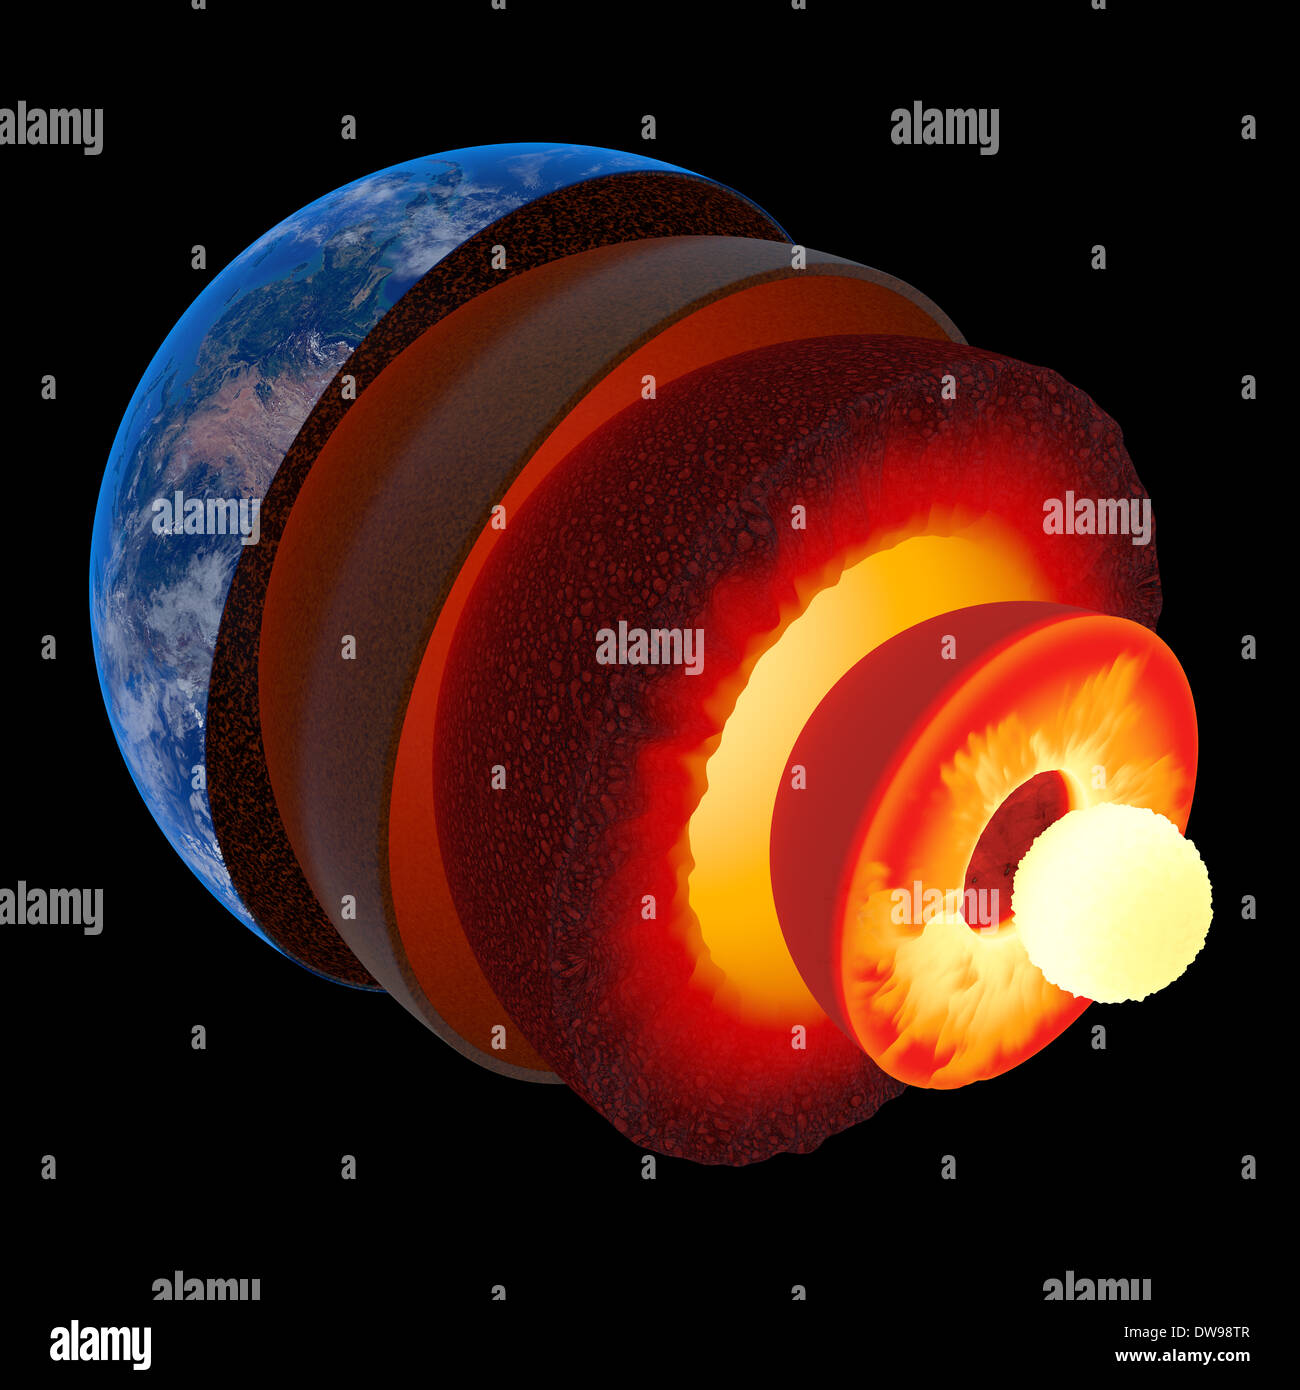 Layers of earth stock photos layers of earth stock images alamy earth core structure illustrated with geological layers according to scale isolated on black texture ccuart